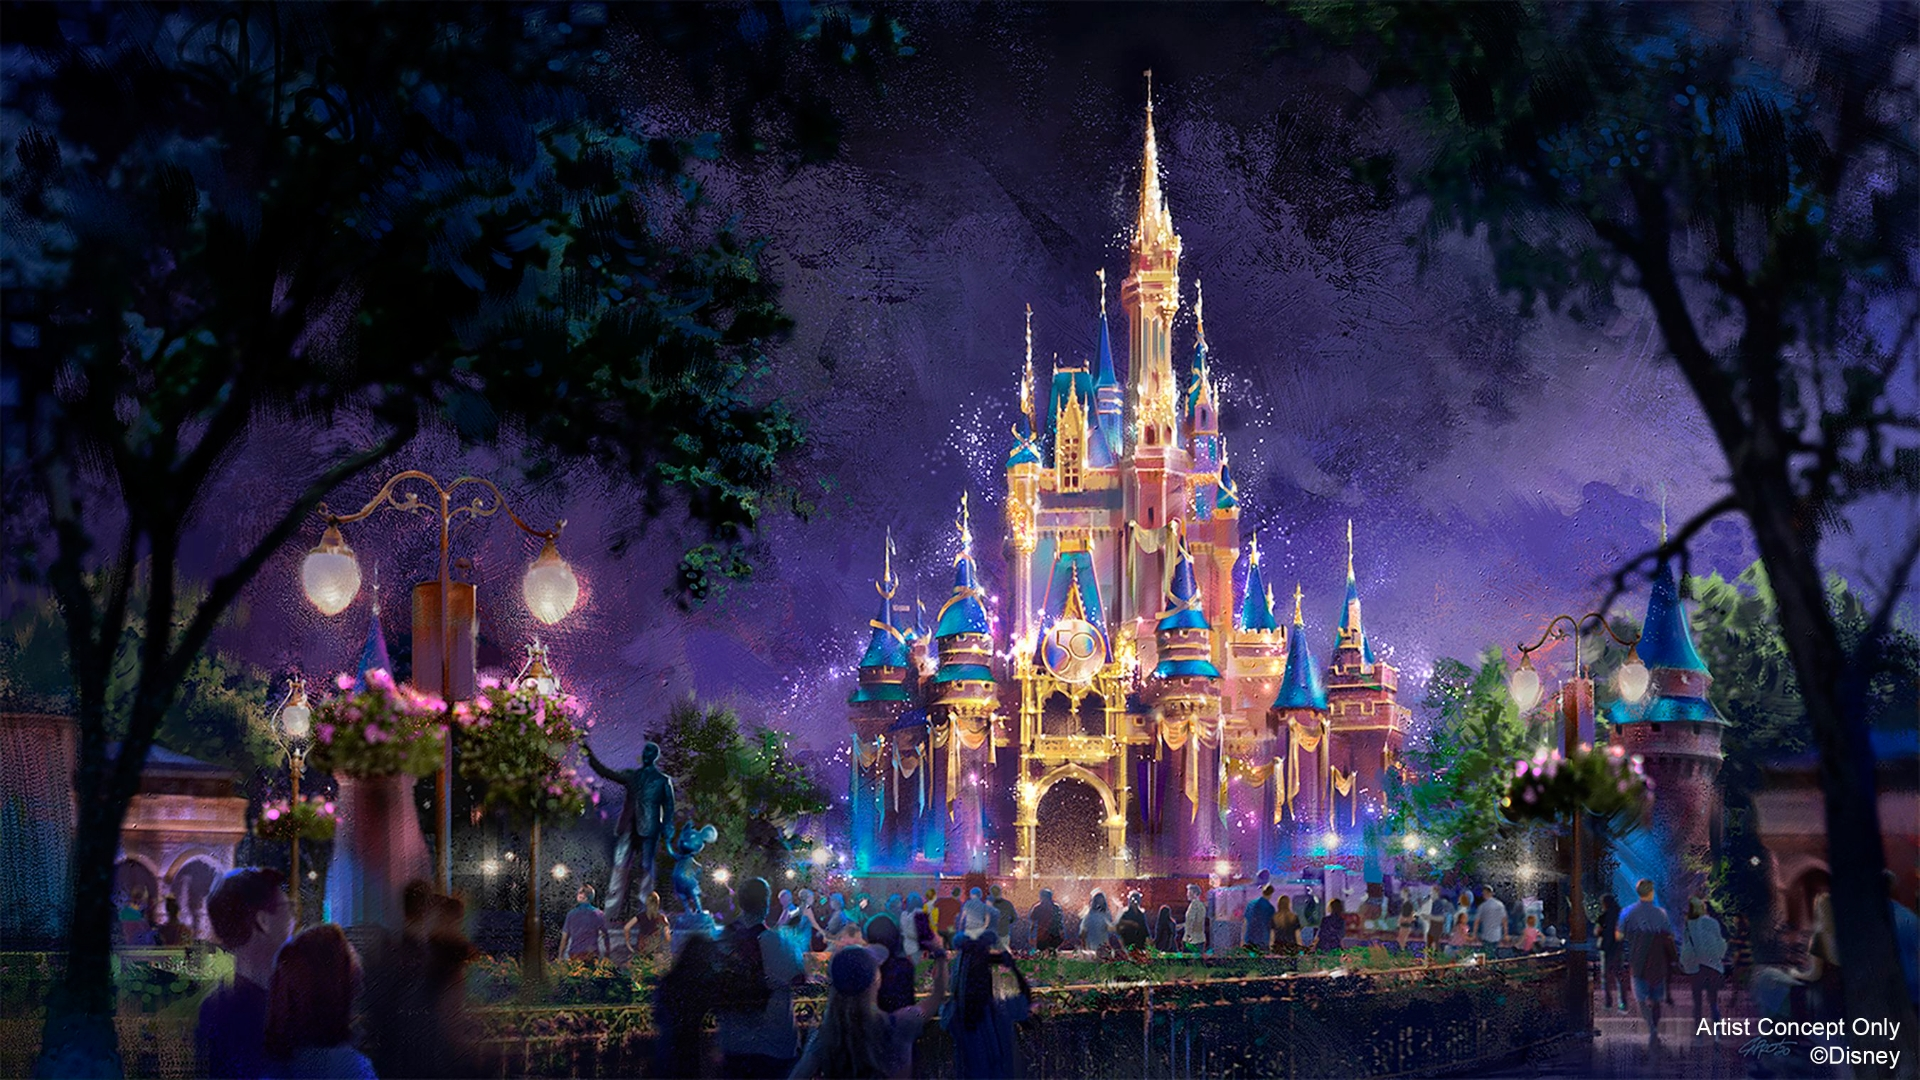 Disney World updates employee dress code policy as part of new emphasis on inclusion, diversity